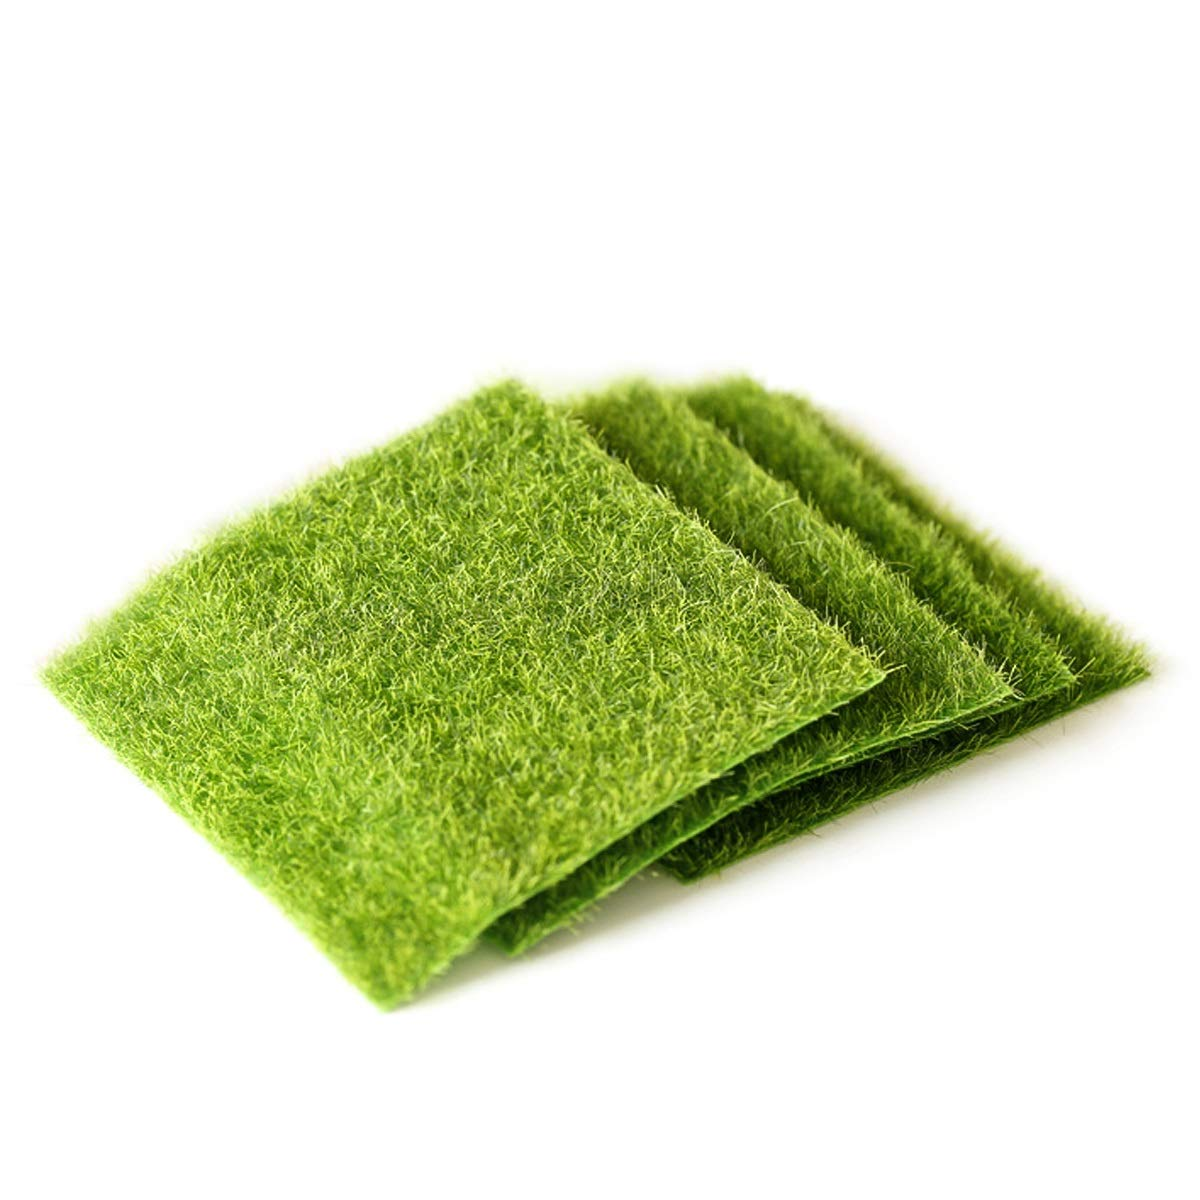 Size : 30cm*30cm Green Artificial Plant Grass Decoration for Hotel Home Office Wall Window Decor Artificial Carpet Fake Grass Synthetic Thick Lawn Pet Turf for Dogs Perfect for Indoor//Outdoor